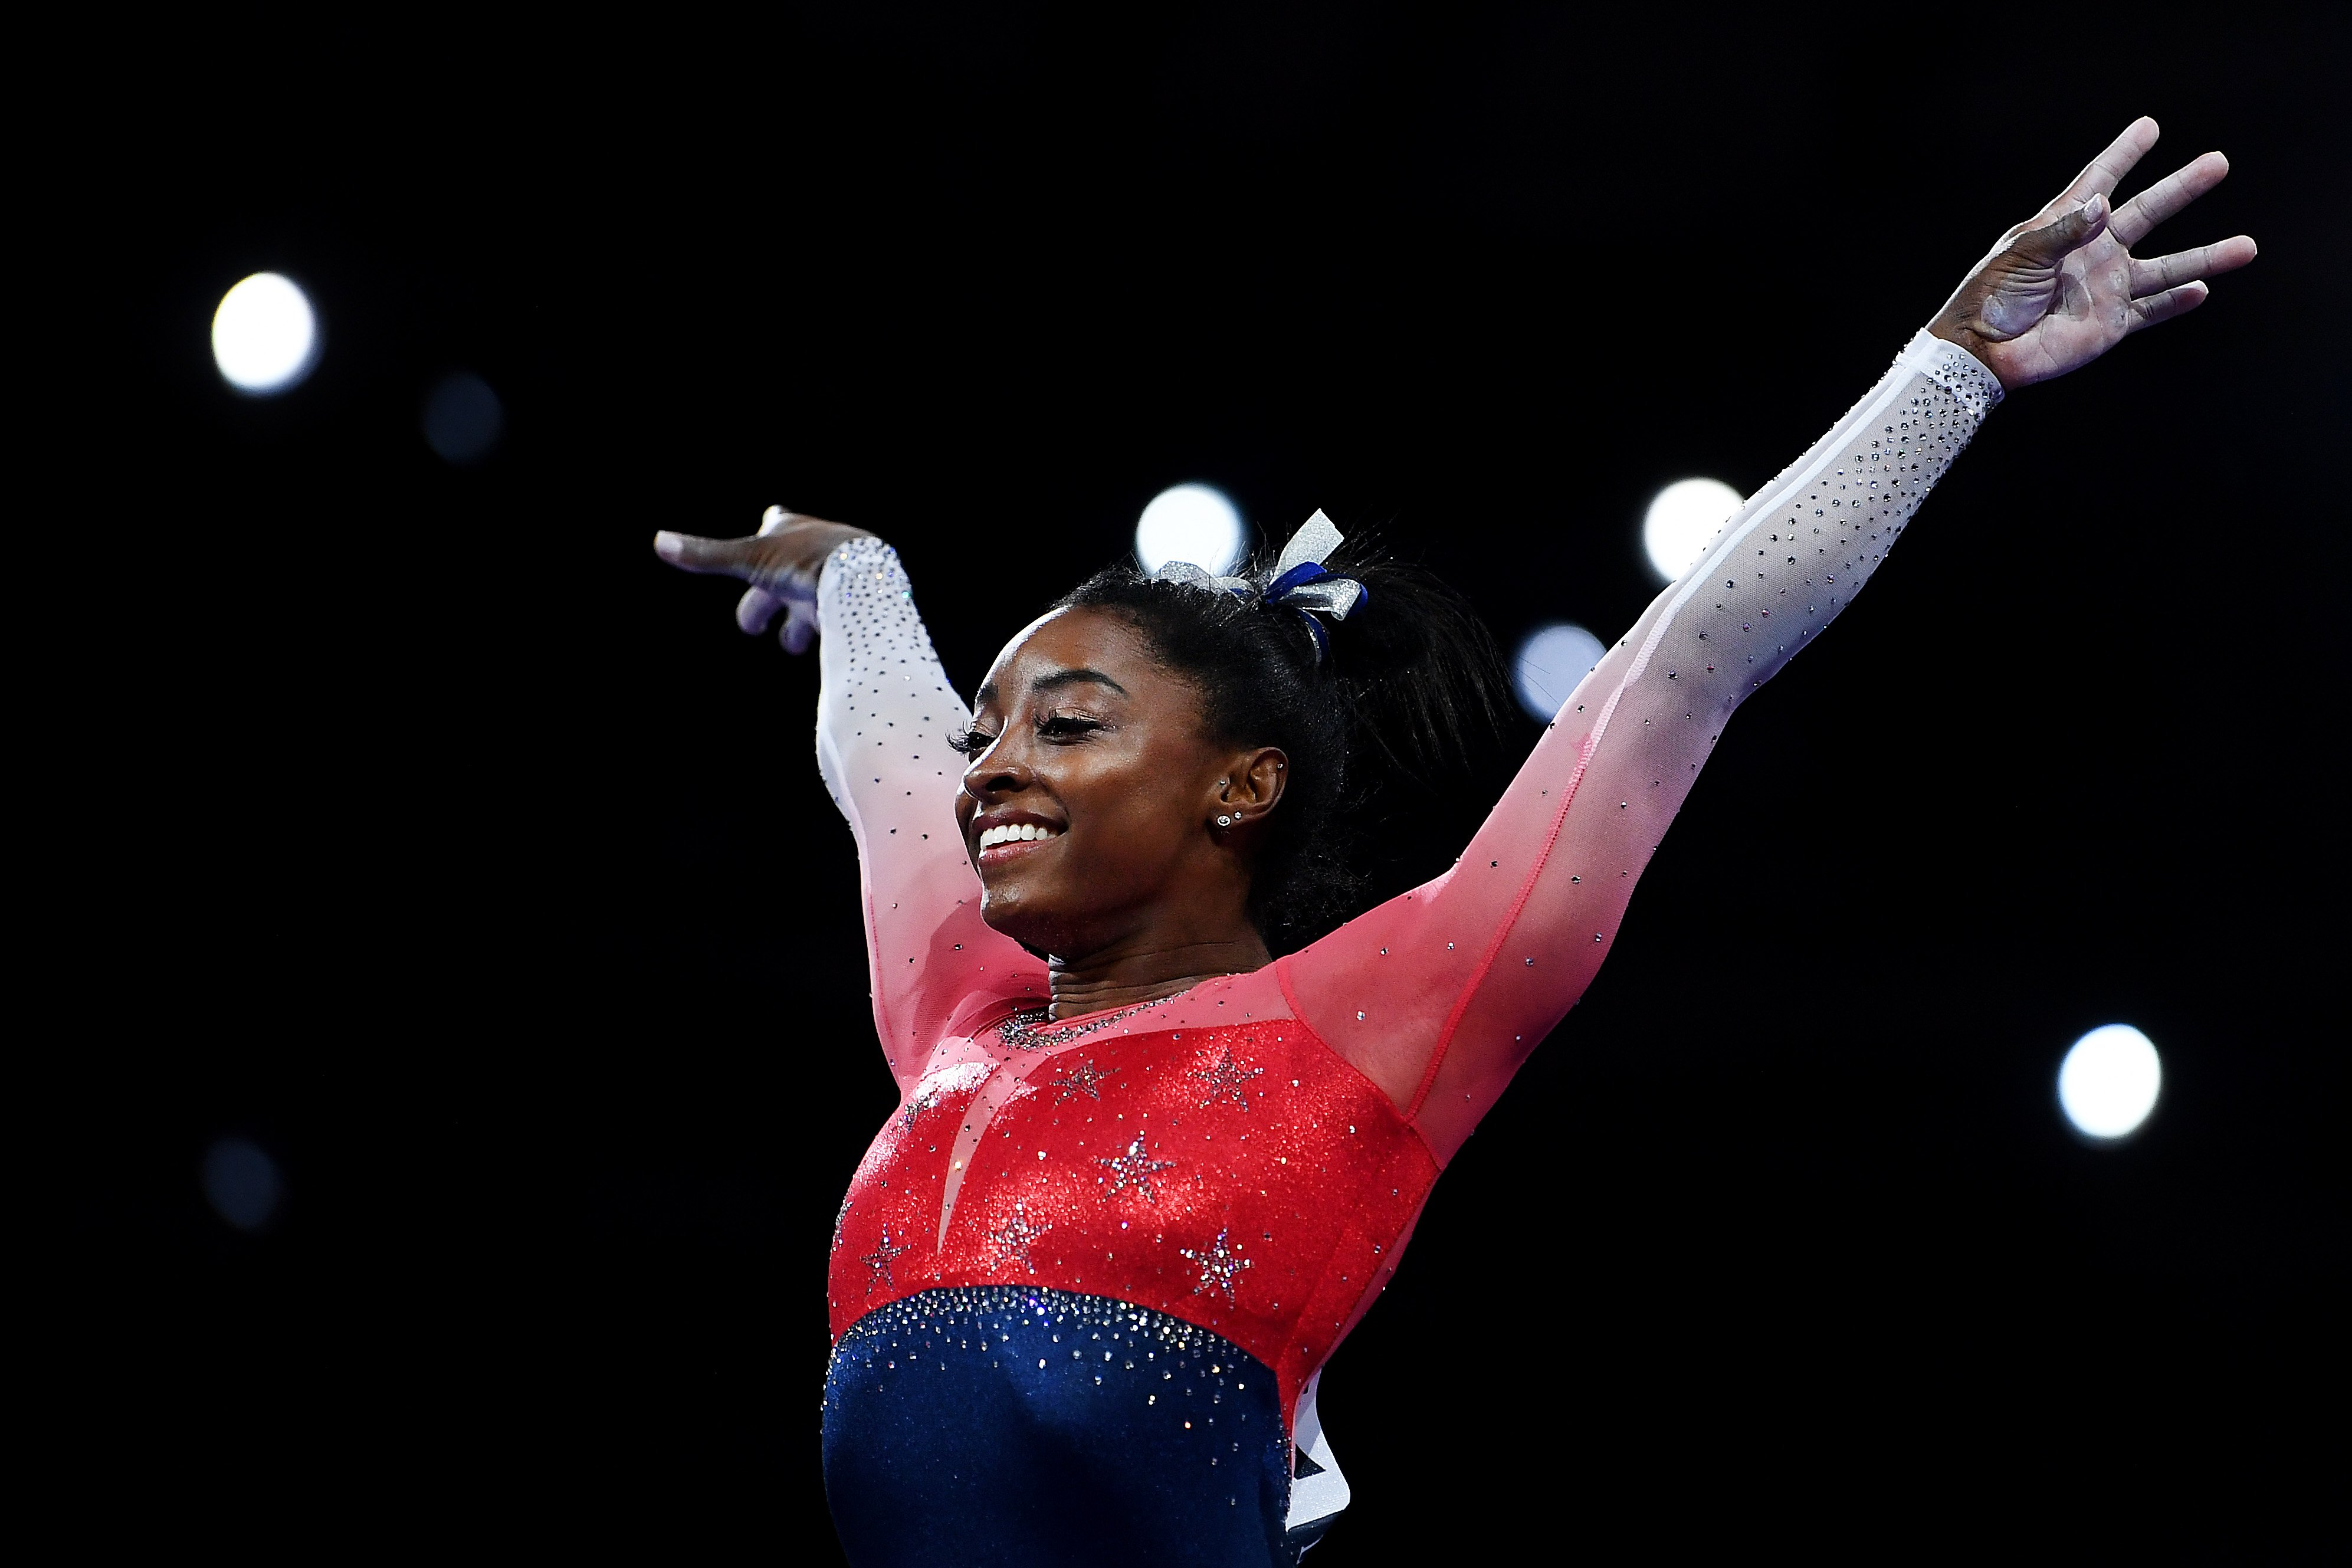 Simone Biles of USA at the FIG Artistic Gymnastics World Championships on October 08, 2019 in Stuttgart, Germany.| Source: Getty Images